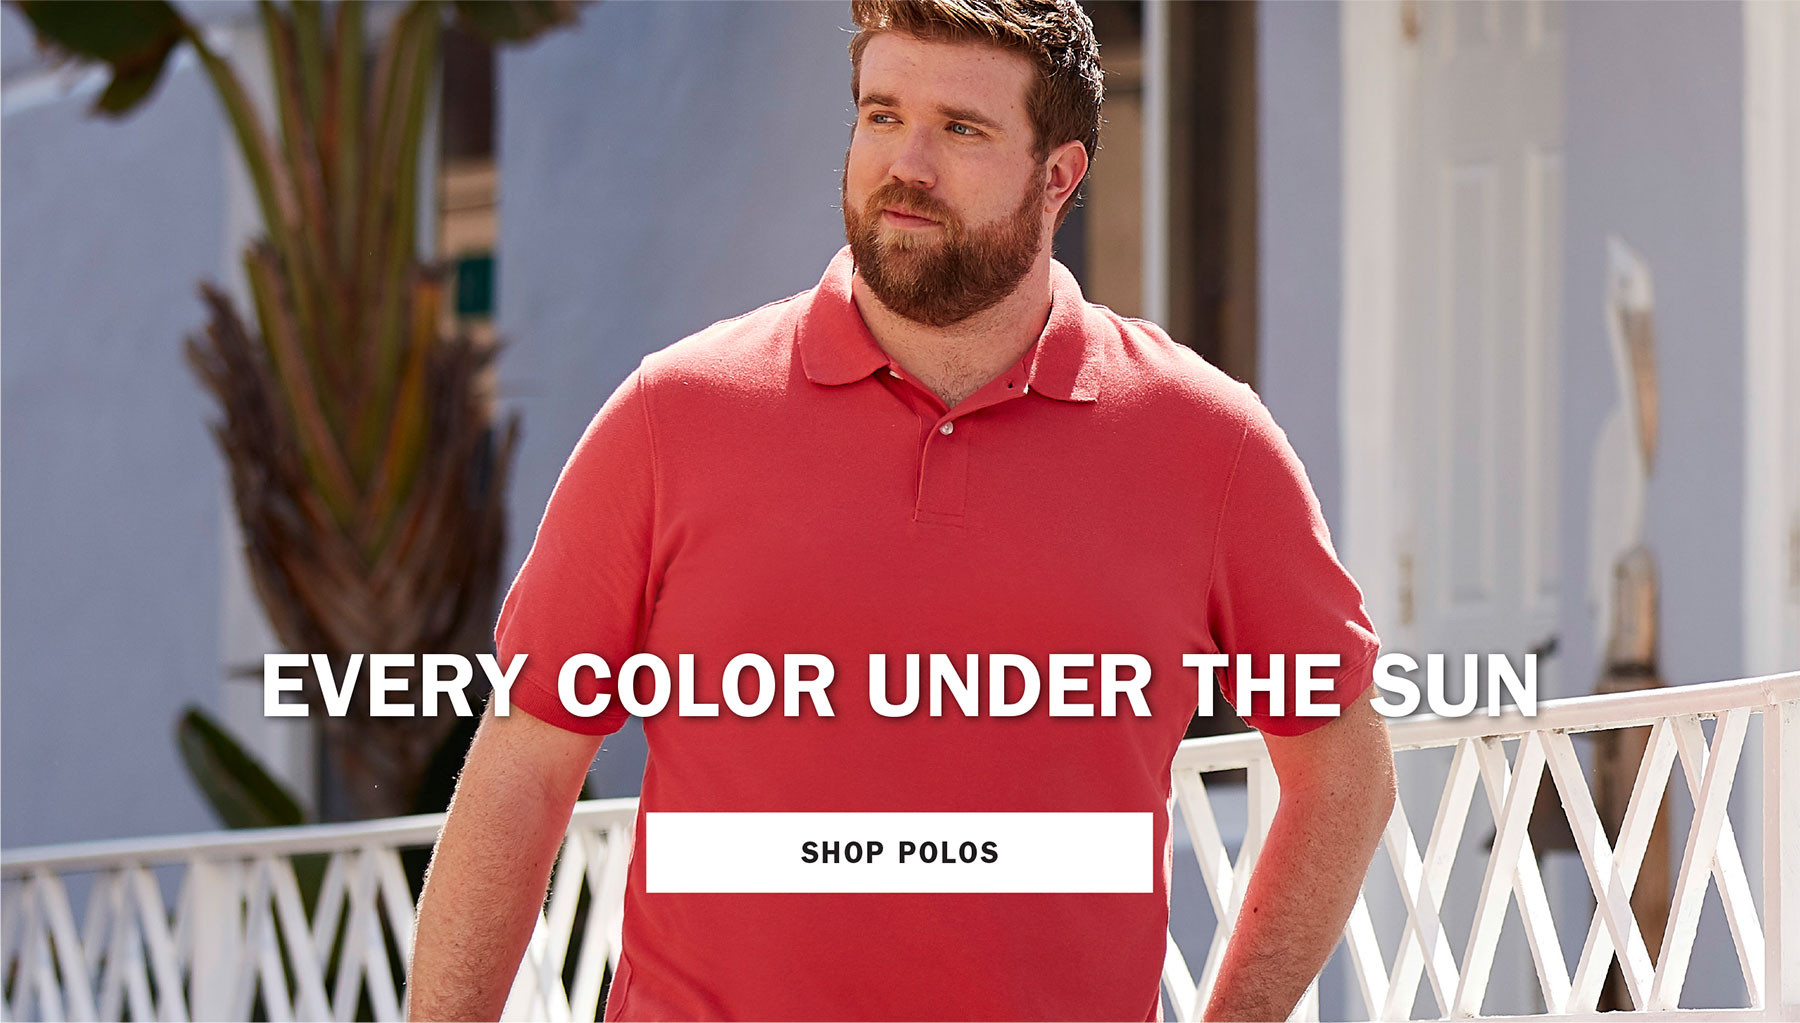 EVERY COLOR UNDER THE SUN | SHOP POLOS